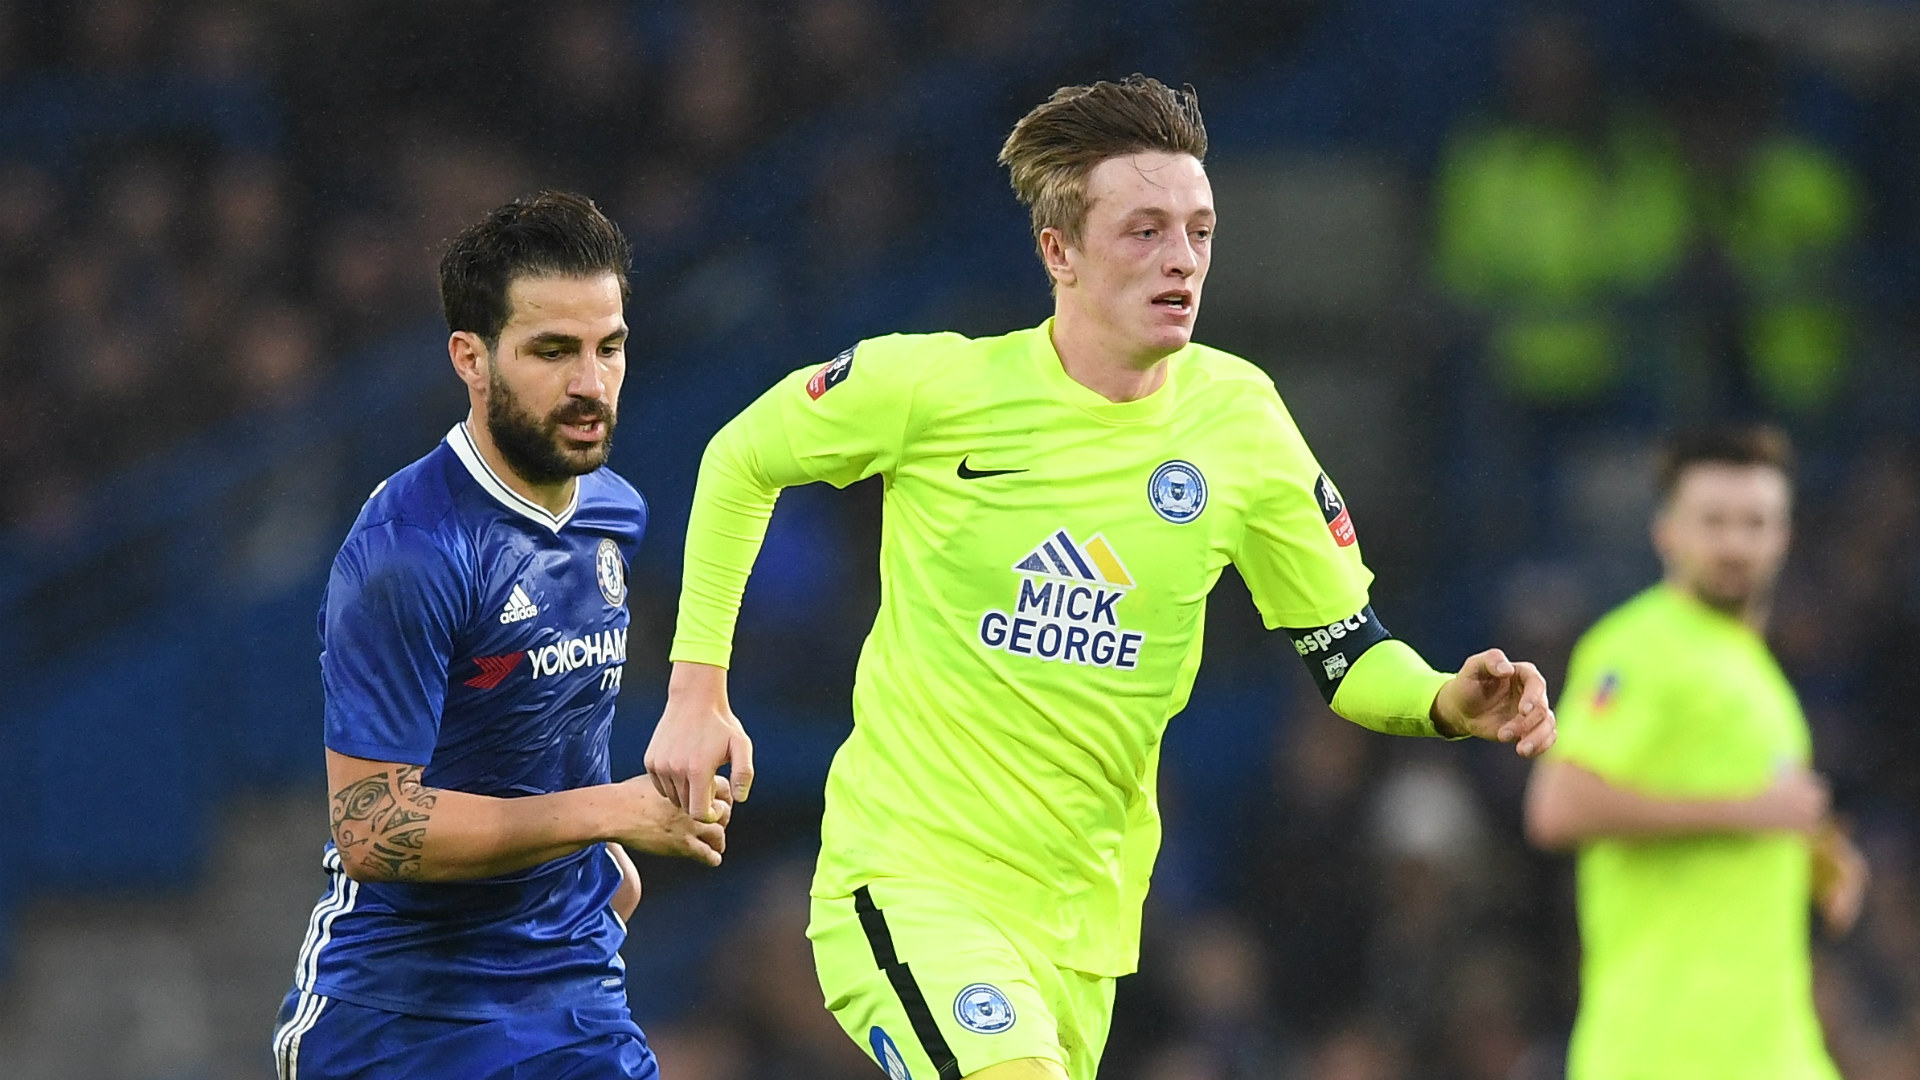 Video: Chelsea vs Peterborough United Highlights